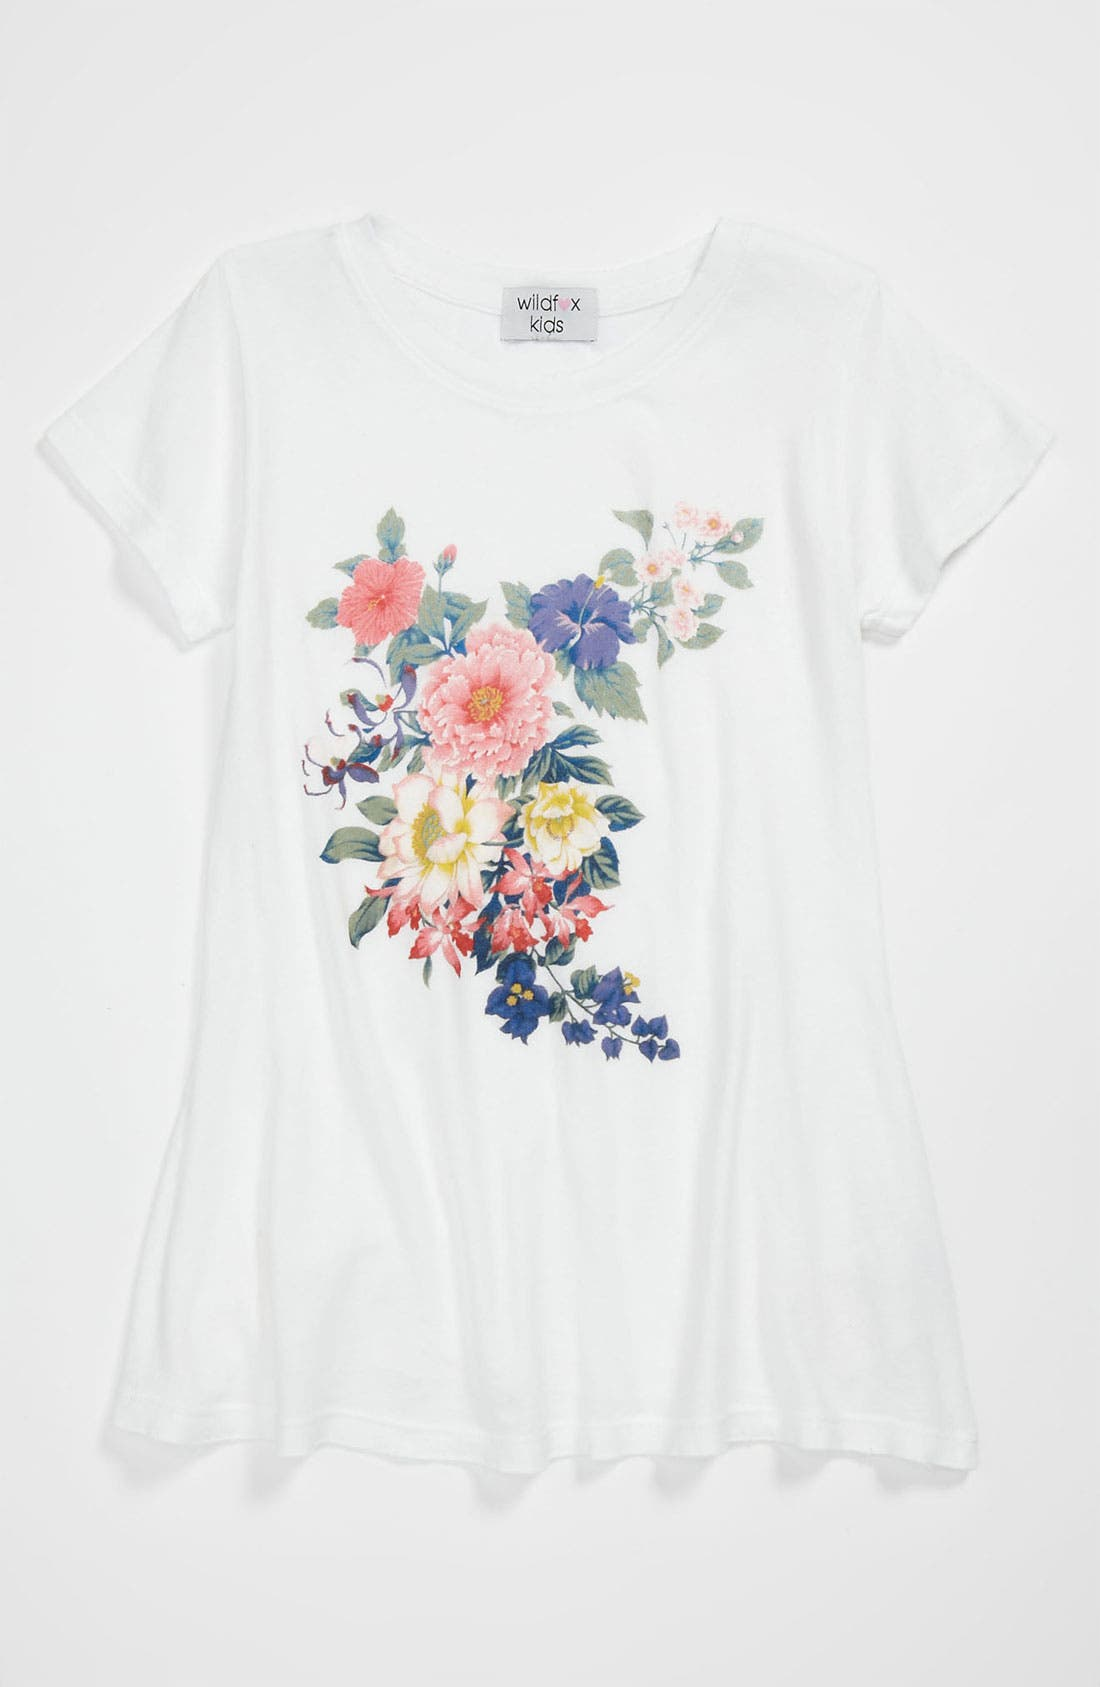 Alternate Image 1 Selected - Wildfox Graphic Tee (Big Girls)